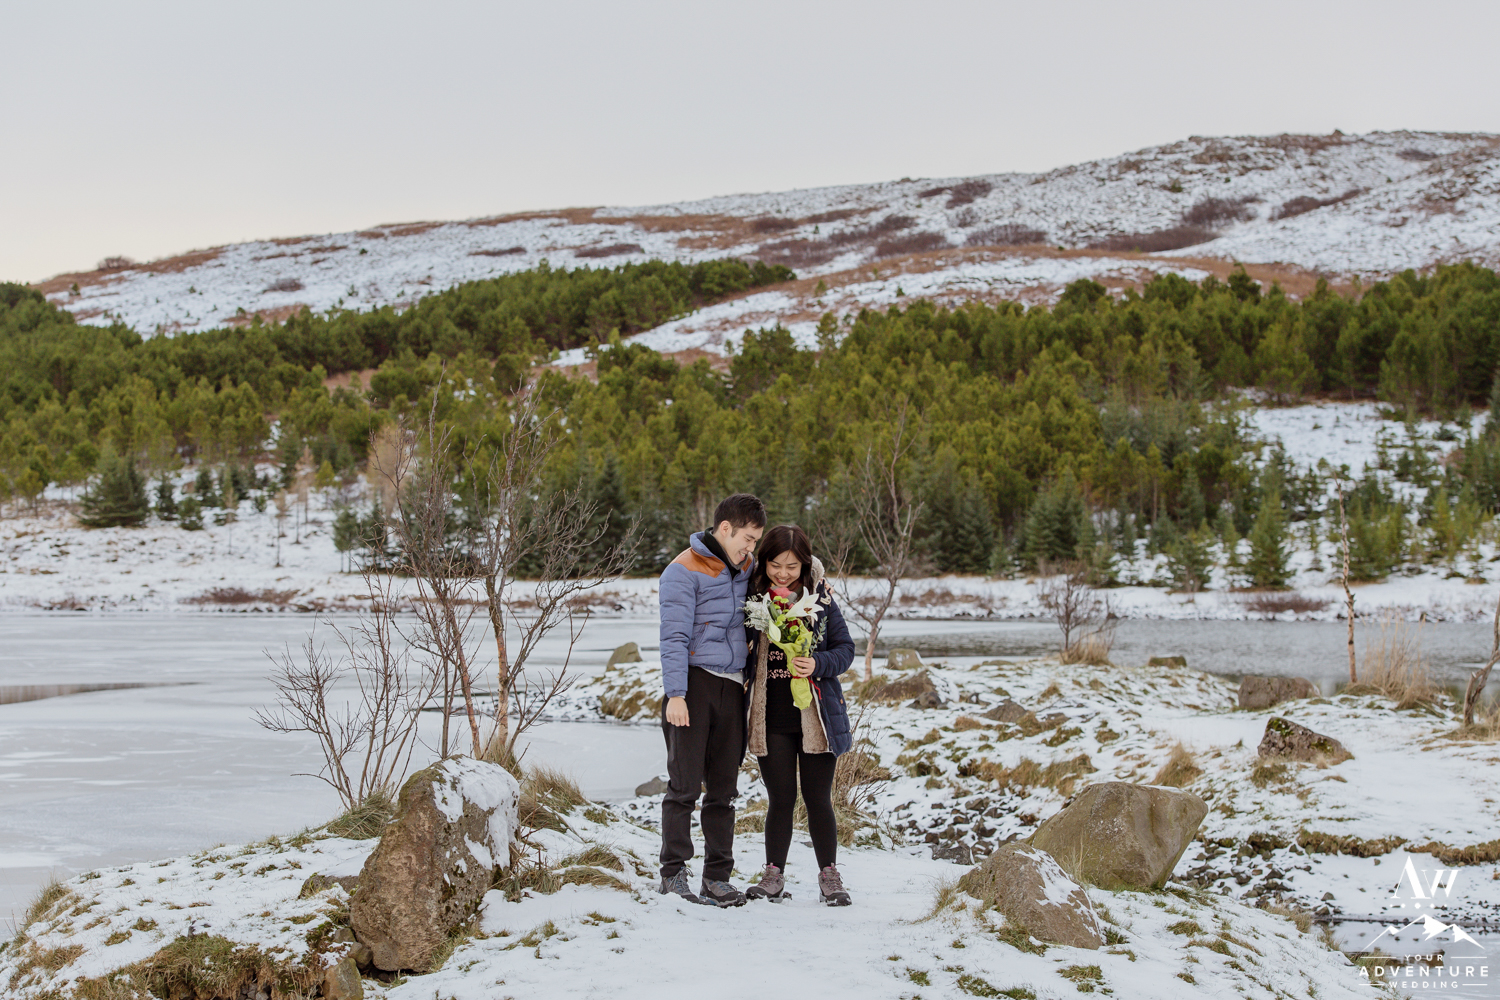 surprise-marriage-proposal-in-iceland-4